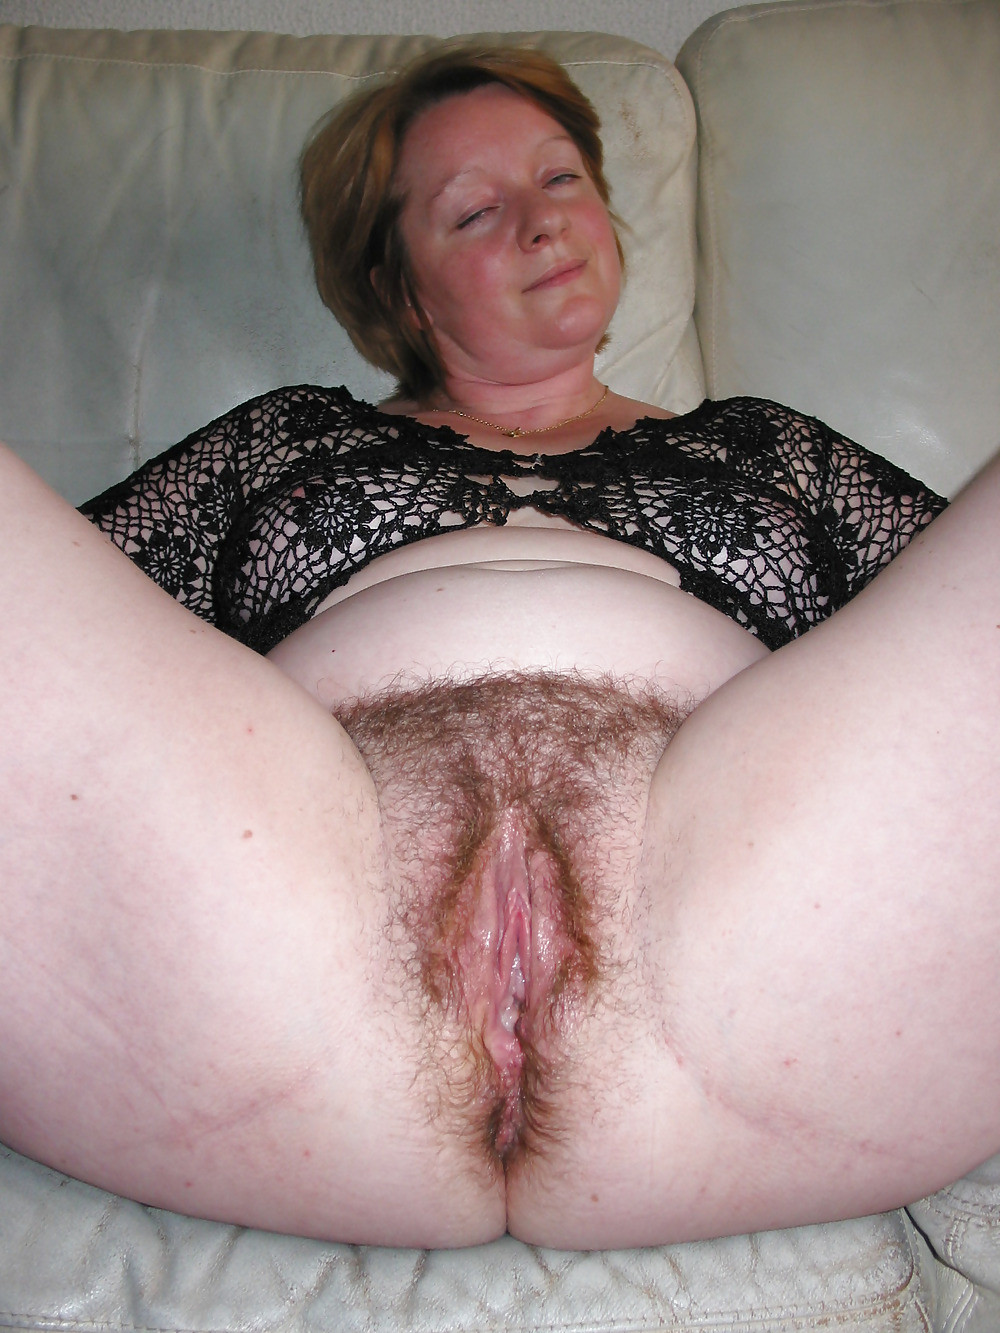 Möchte extreme hairy pics really horny